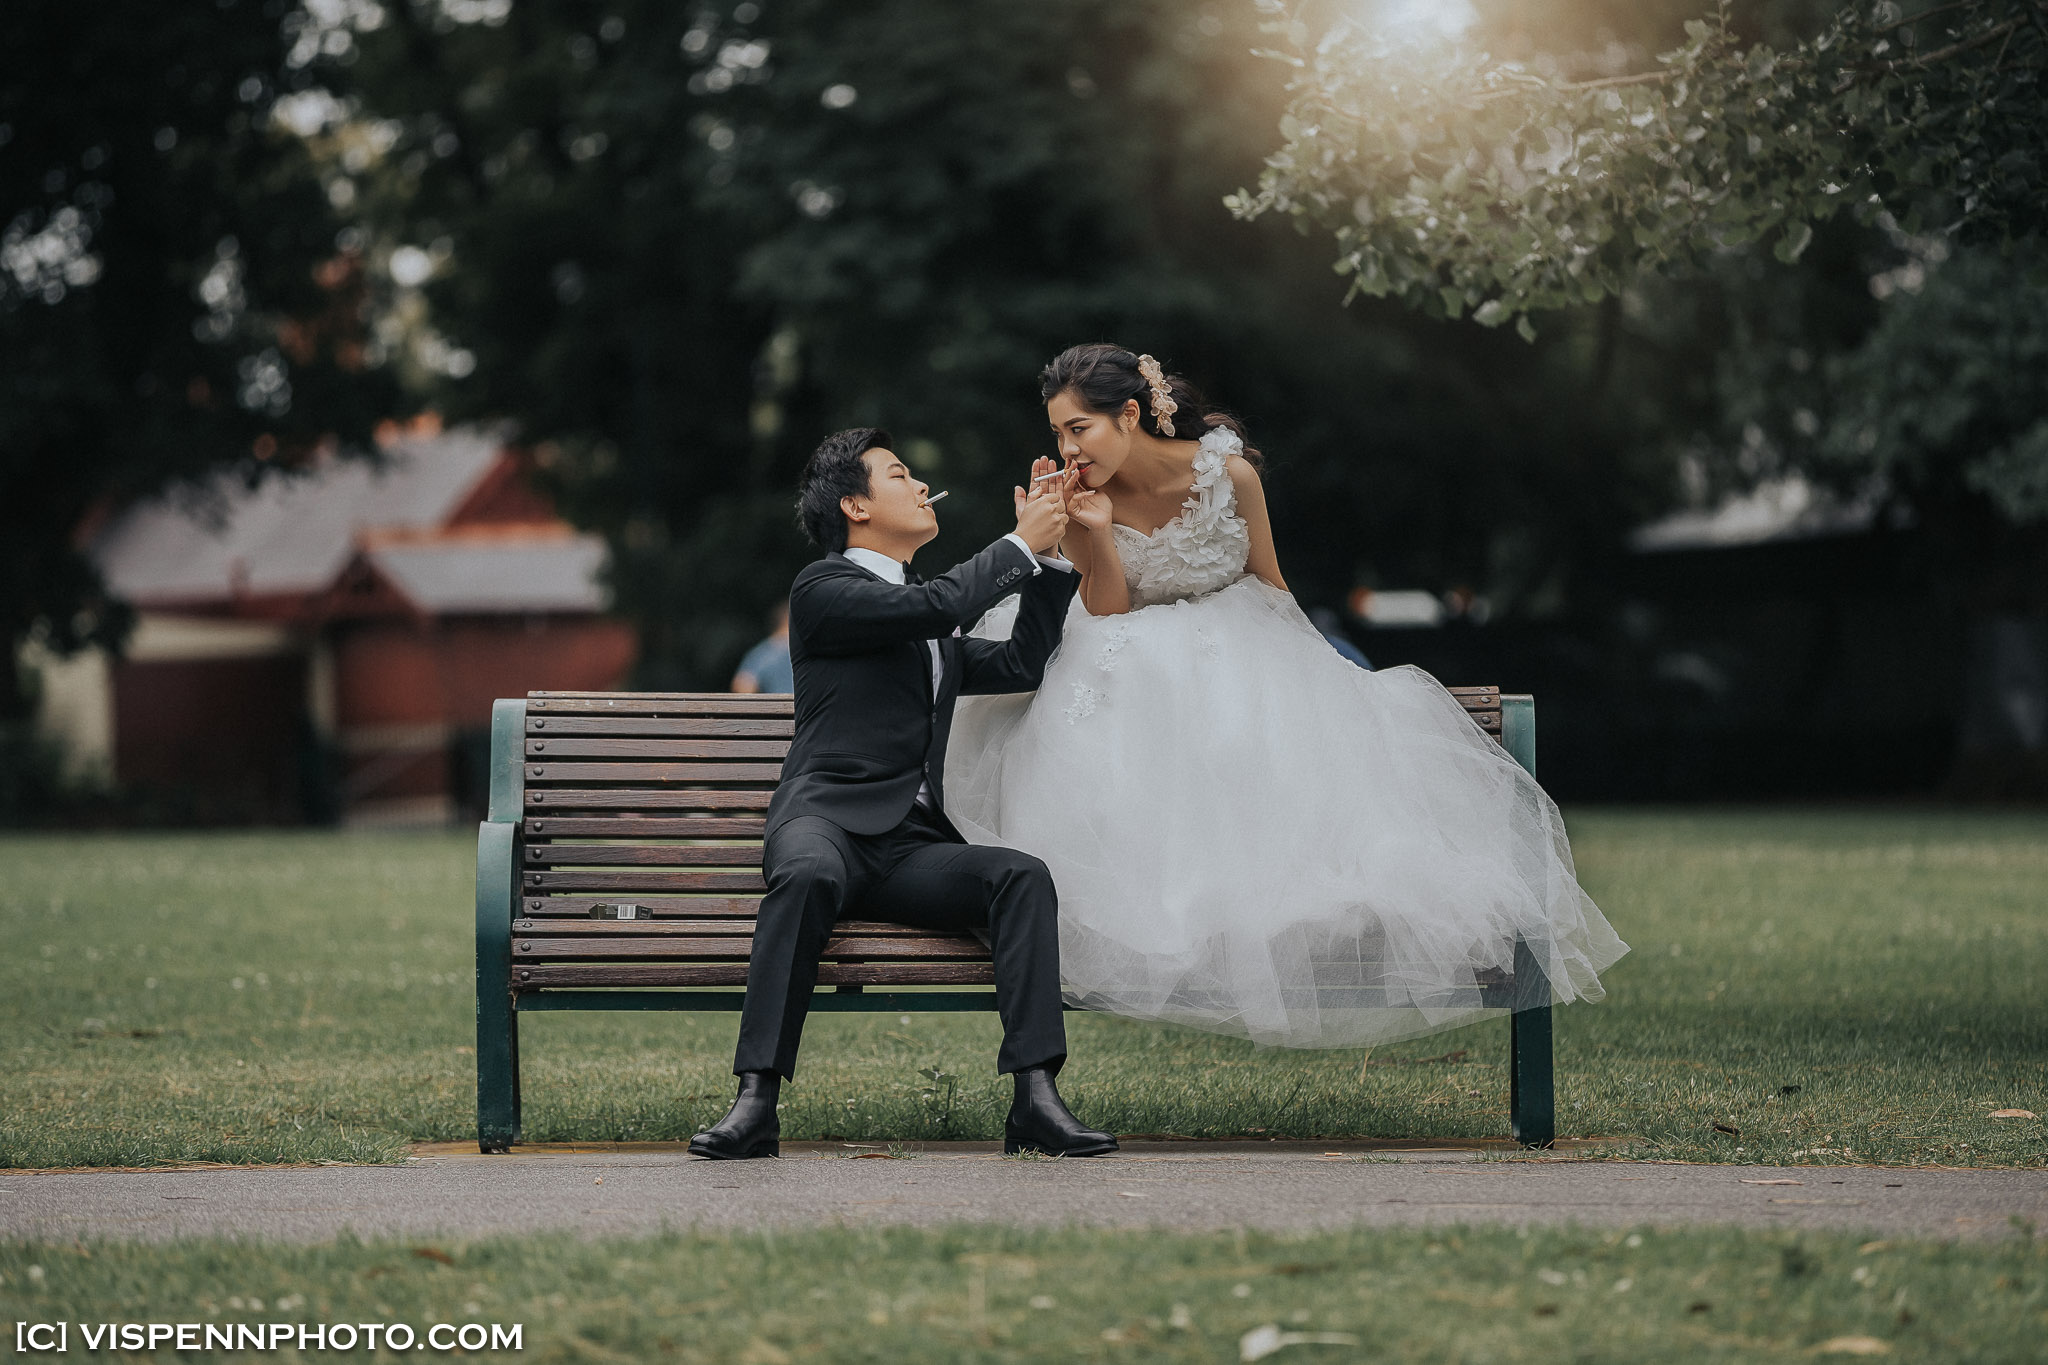 PRE WEDDING Photography Melbourne 1DX 0472